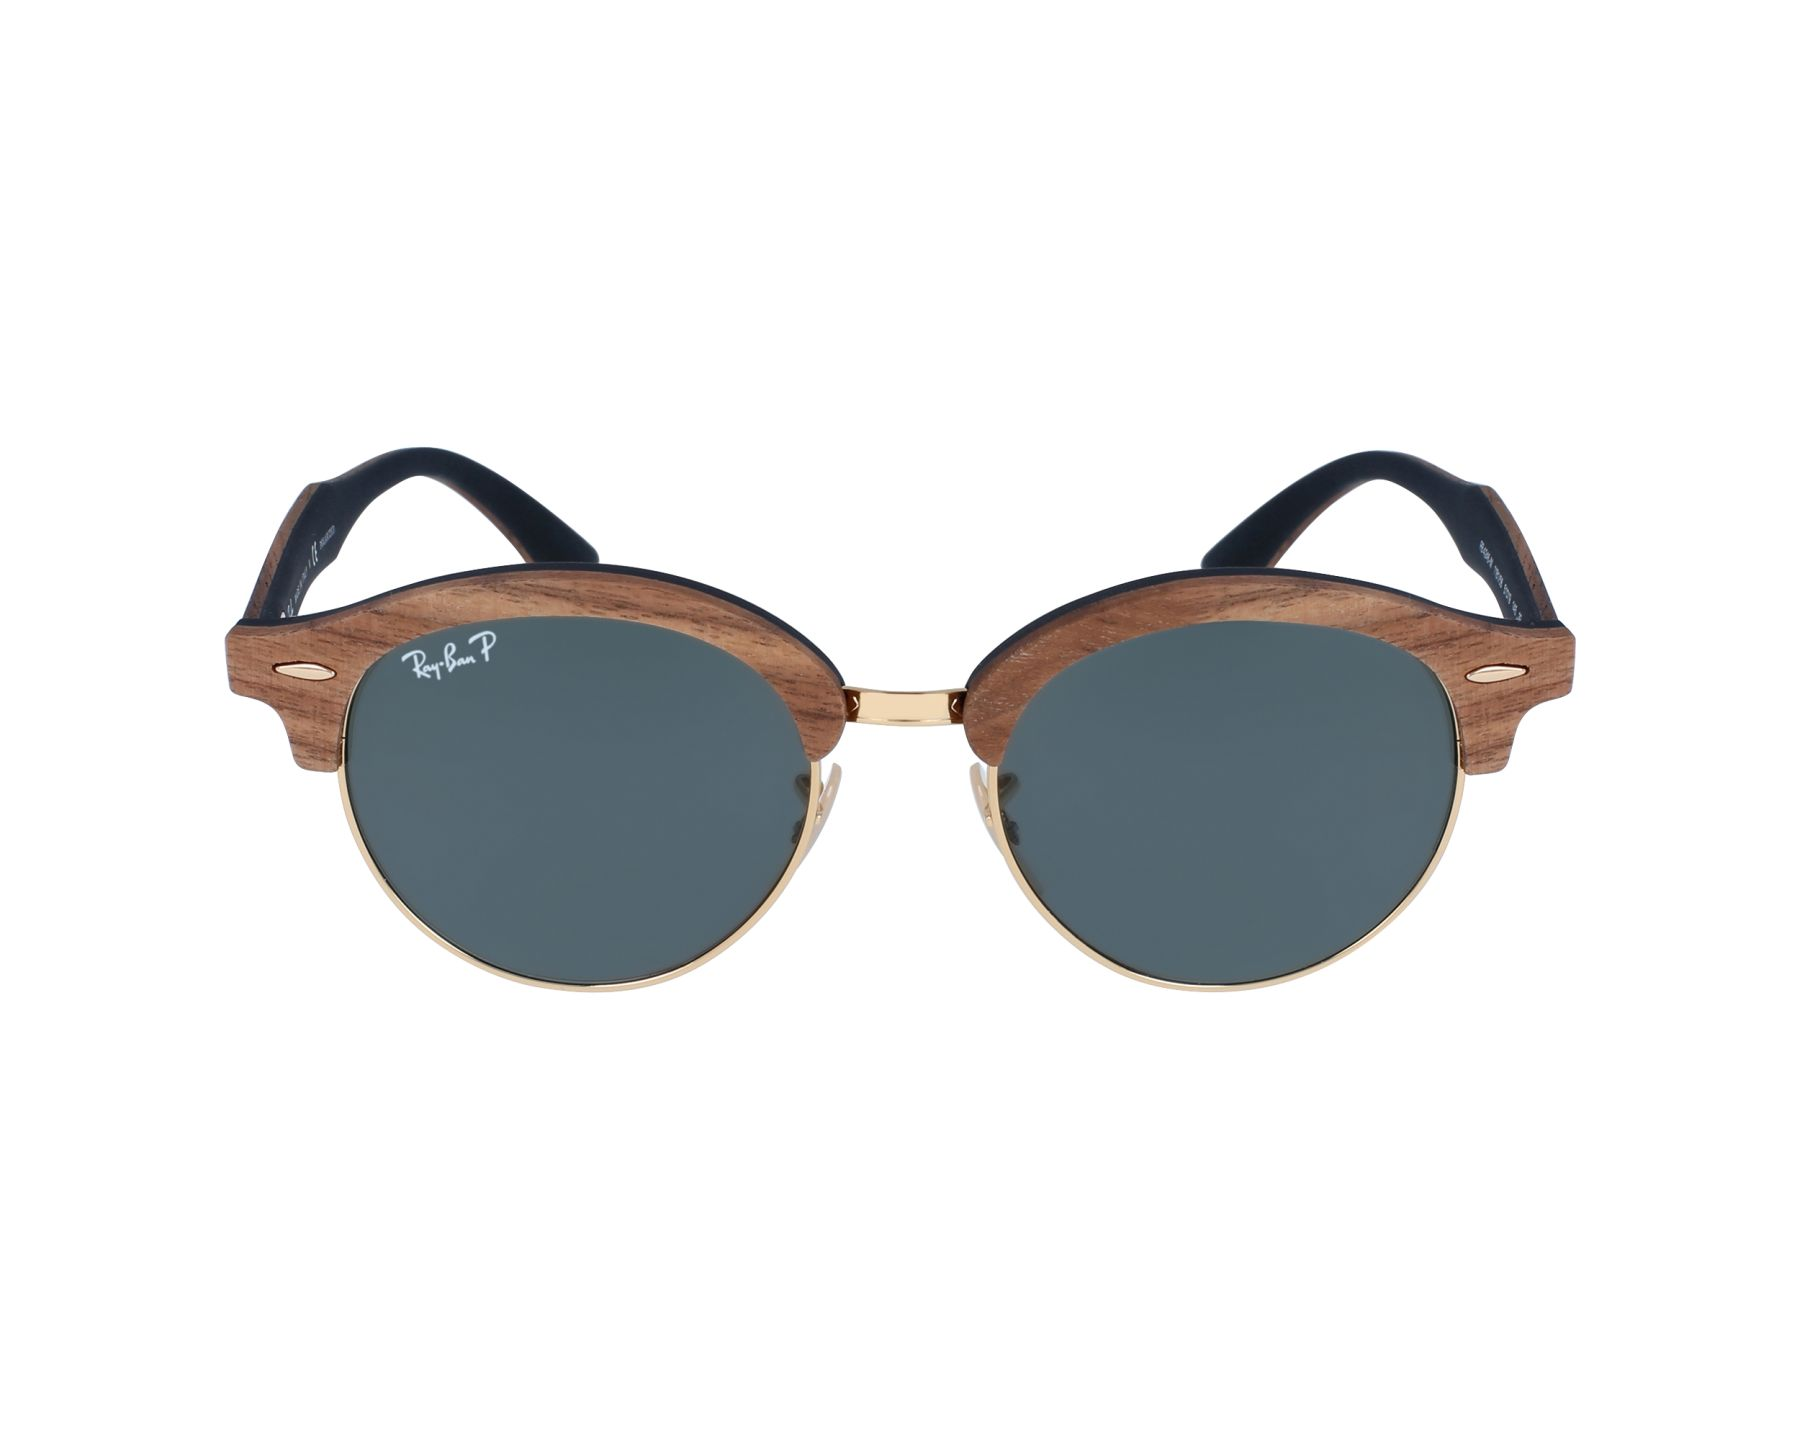 Ray-Ban Sunglasses RB-4246-M 1181/58 Wood with Grey green